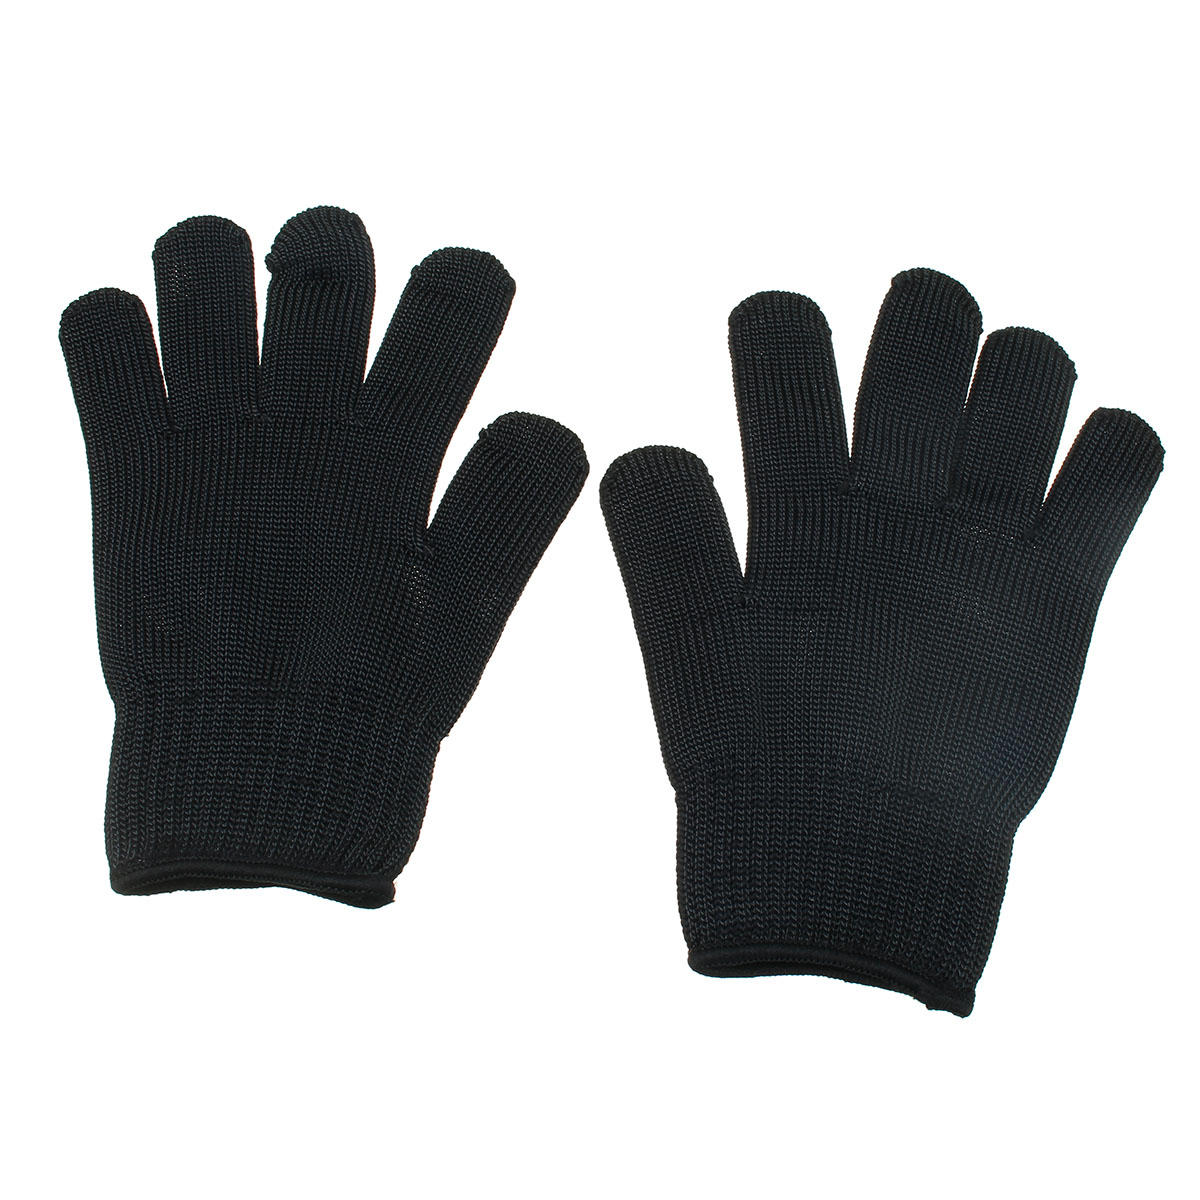 Working Safety Gloves Cut Resistant Protective Stainless Steel Wire Butcher Anti-Cutting Gloves